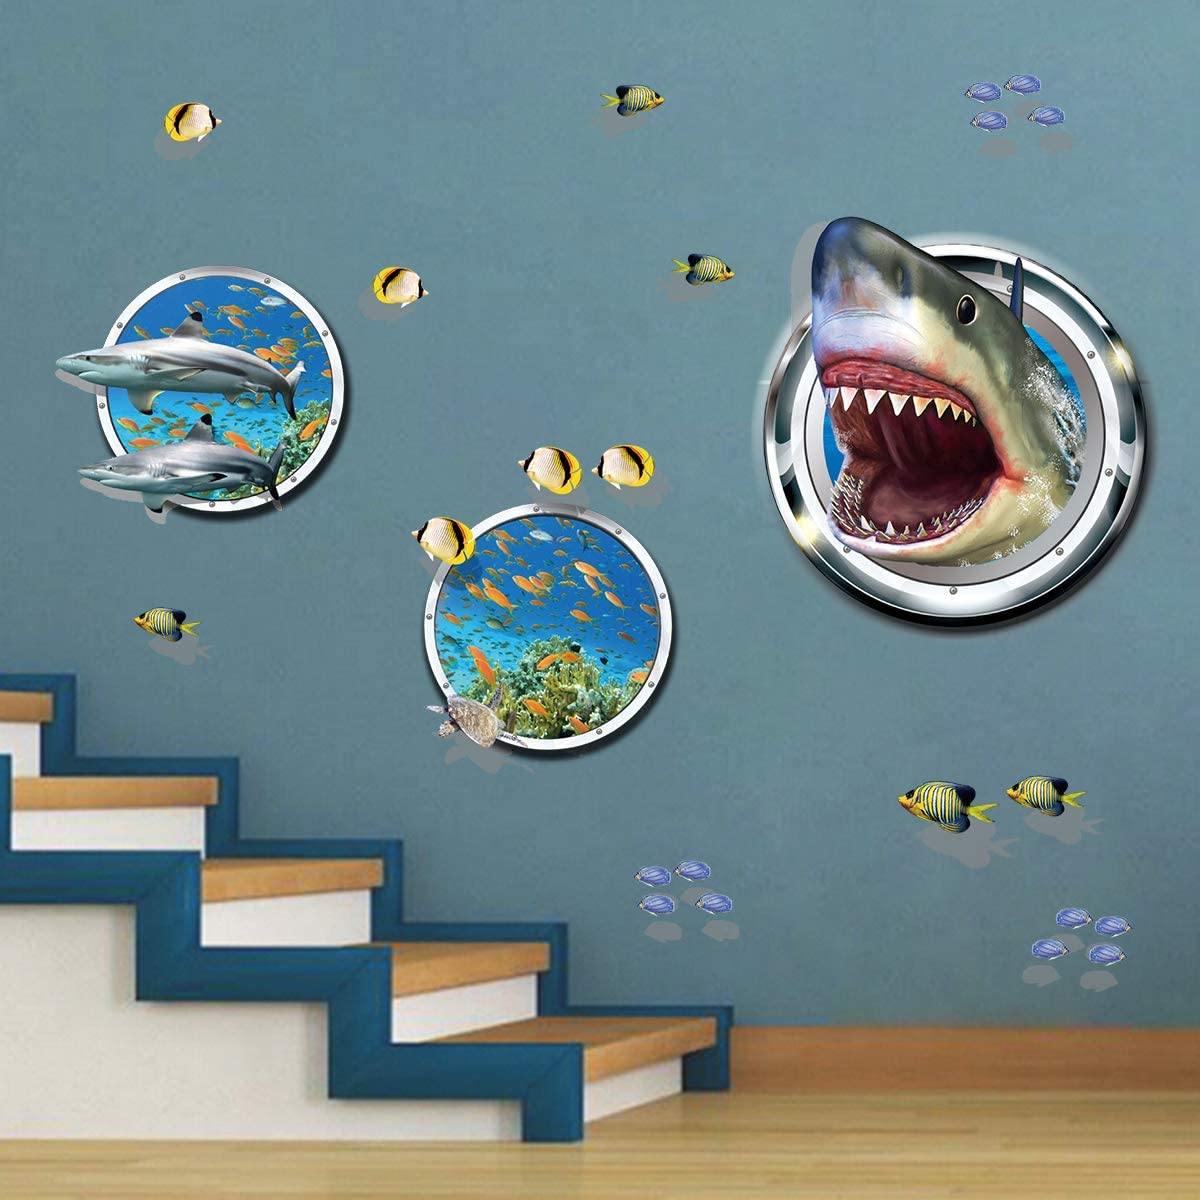 ufengke 3D Shark Broken Wall Stickers Tropical Fish DIY Wall Decals Art Decor for Kids Boys Bedroom Playroom